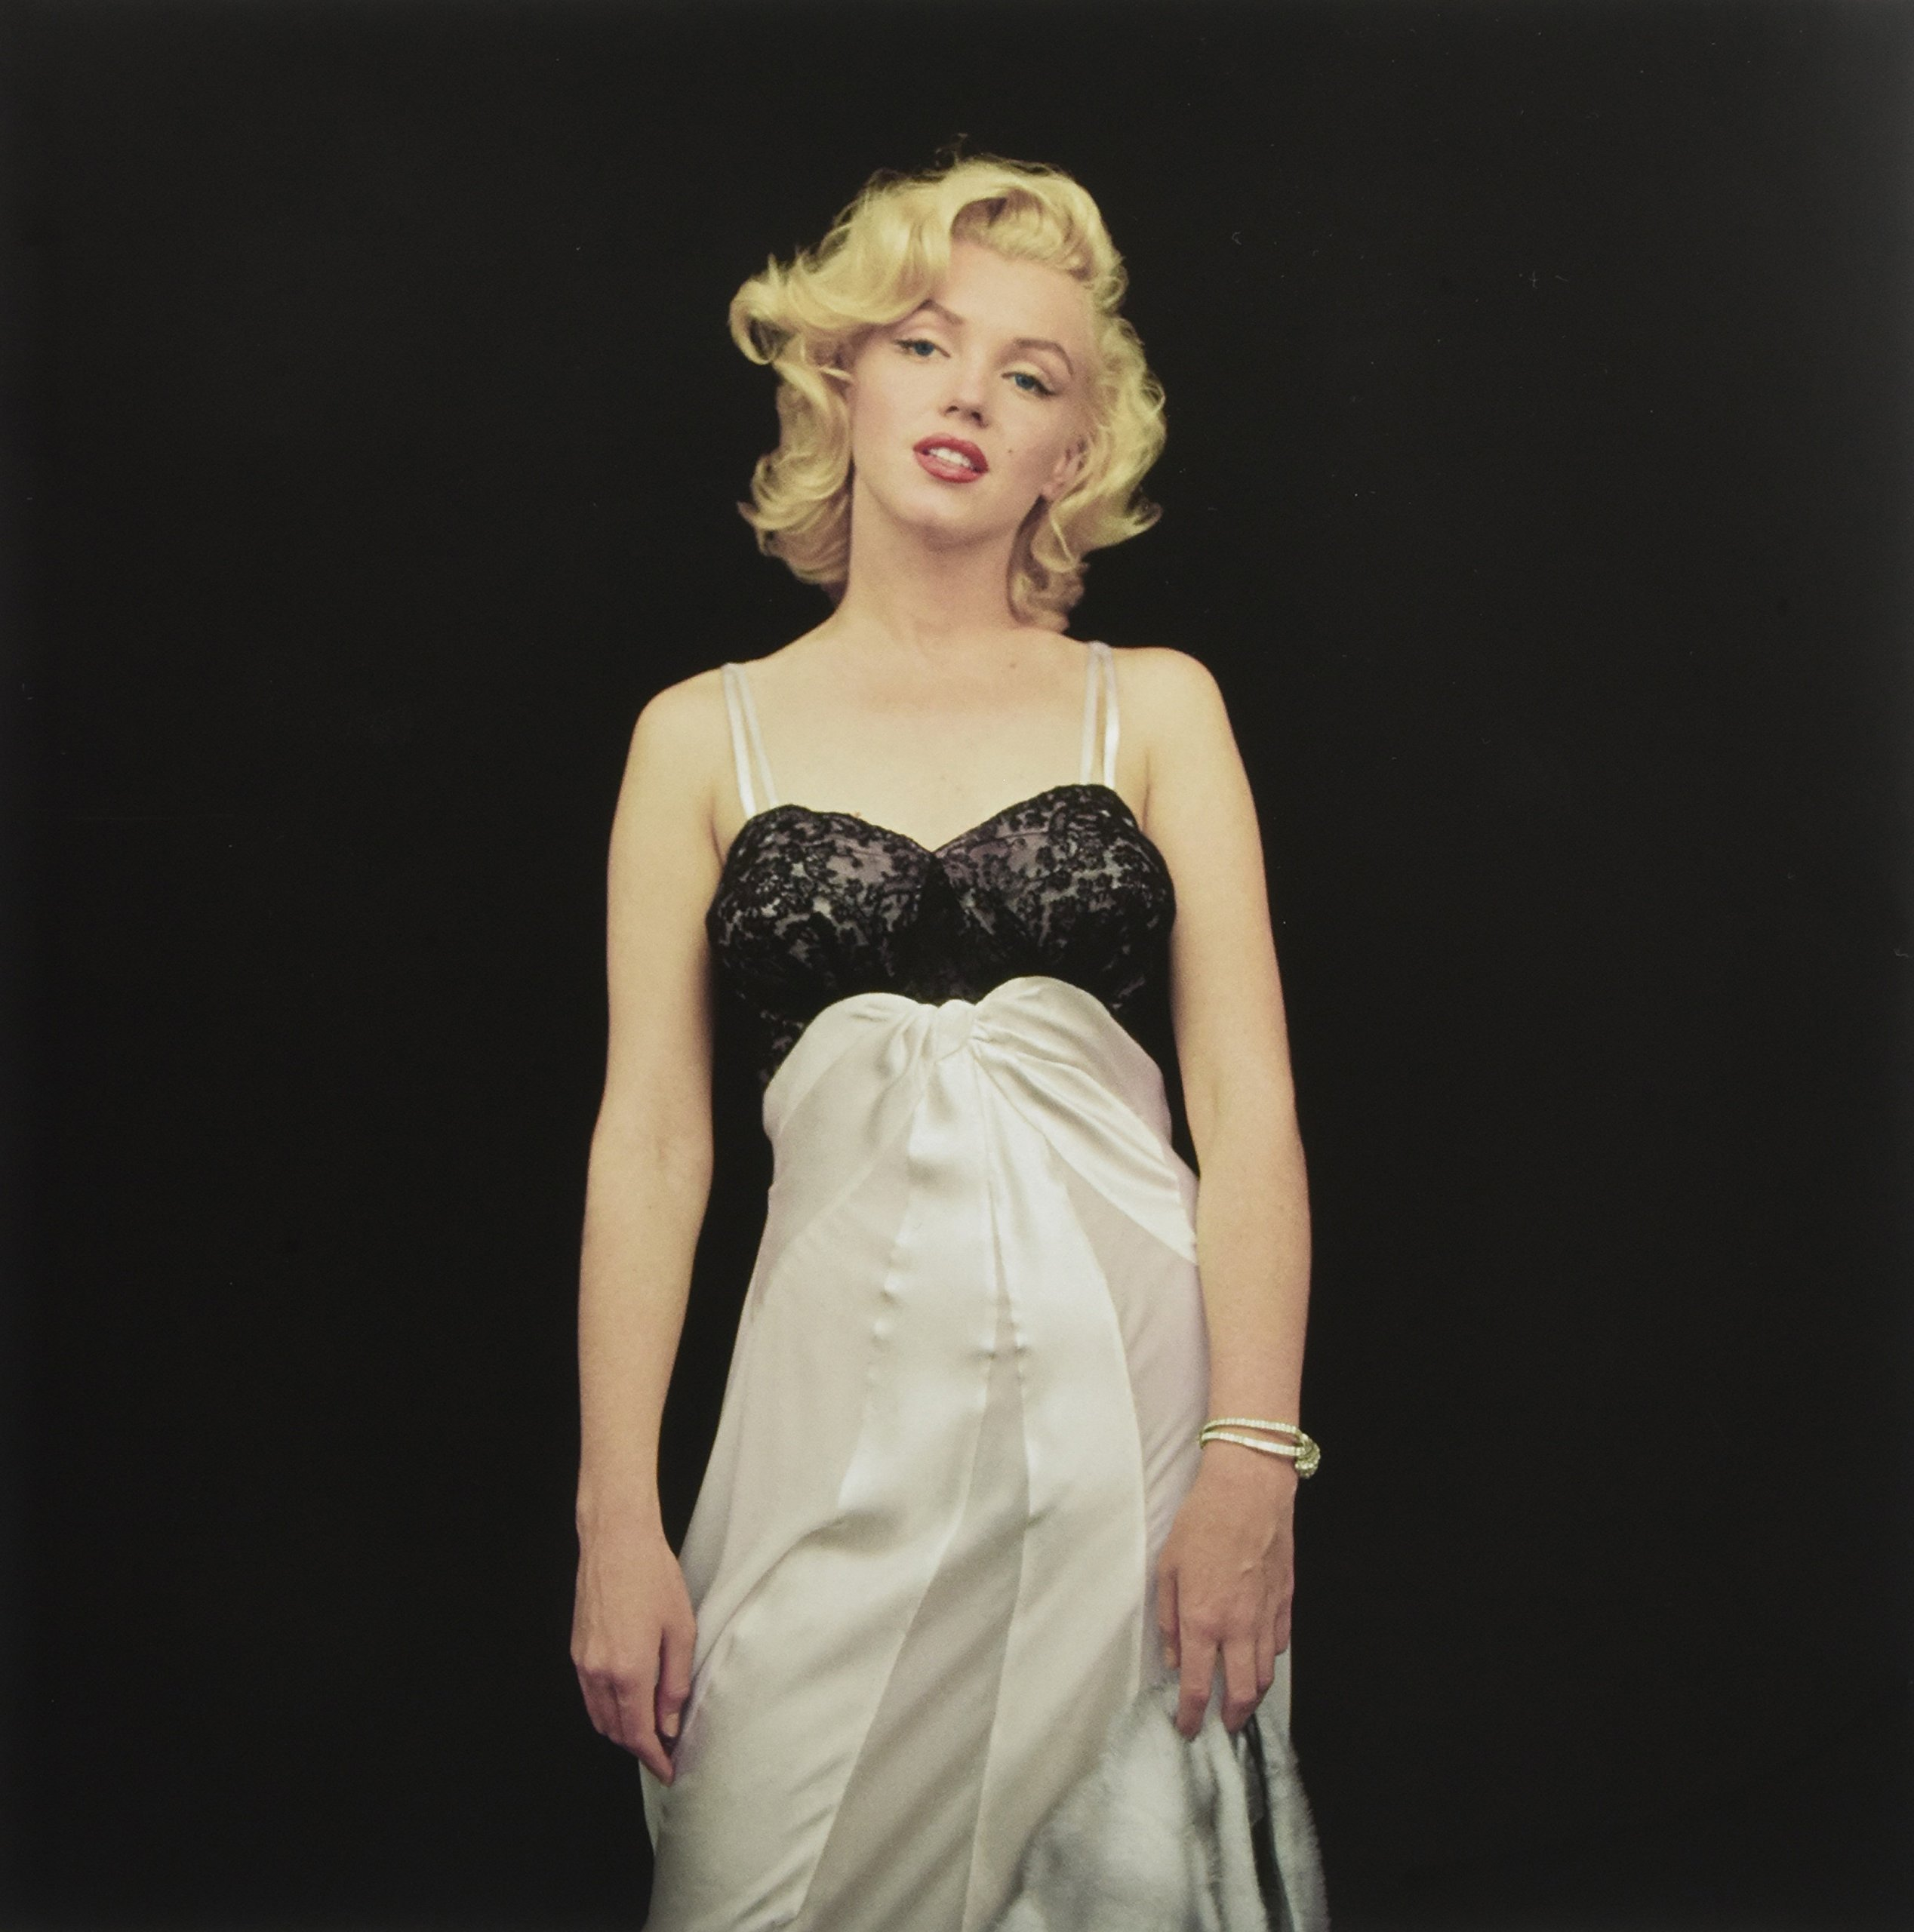 a5c9ec3a8af The Essential Marilyn Monroe by Milton H. Greene  Milton H. Greene  50  Sessions Hardcover – October 16